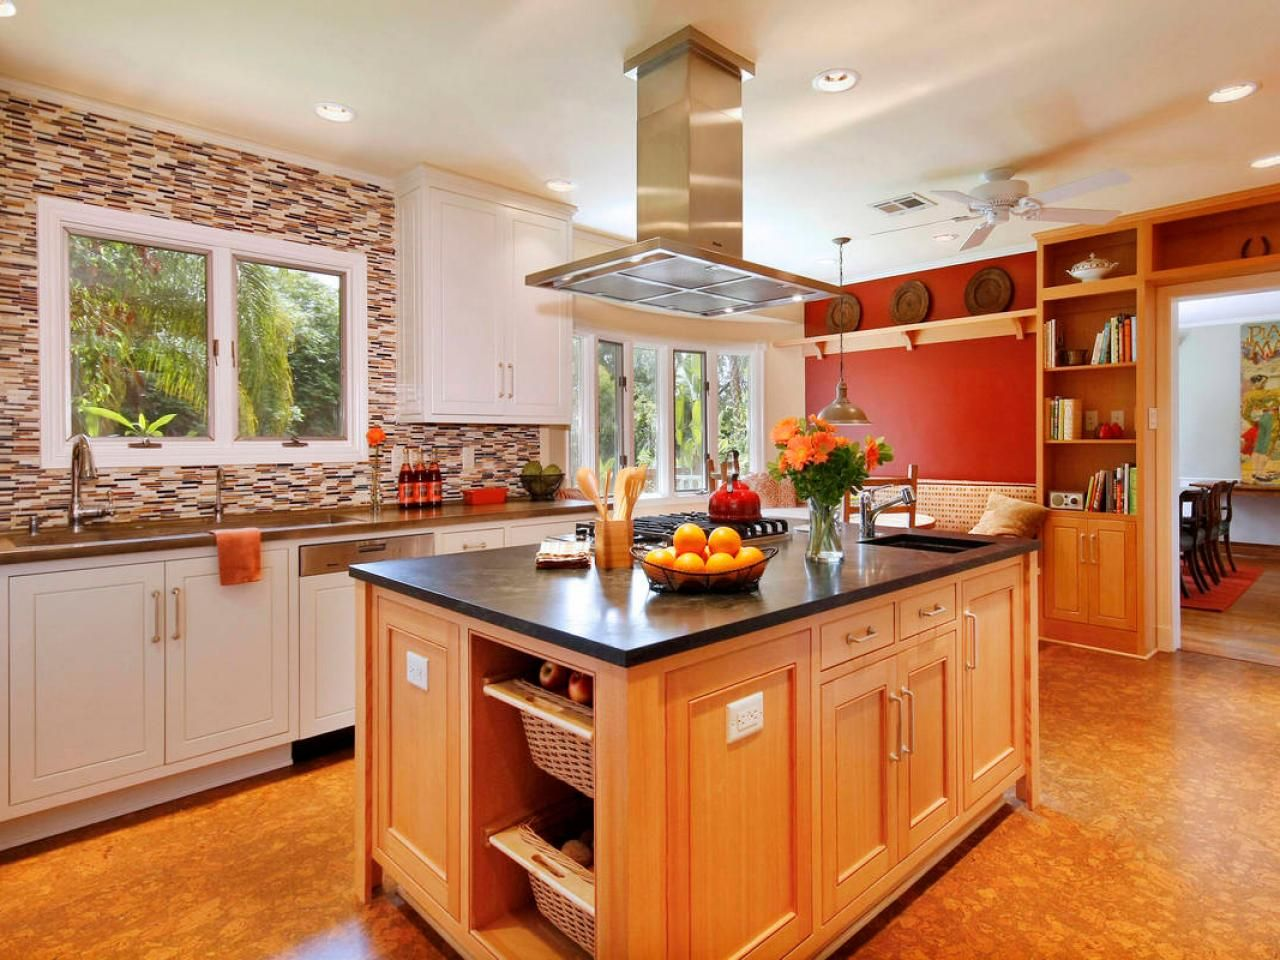 Wonderful Kitchen Decorating Ideas With Red Accents Part - 9: Pictures Of Colorful Kitchens: Ideas For Using Color In The Kitchen